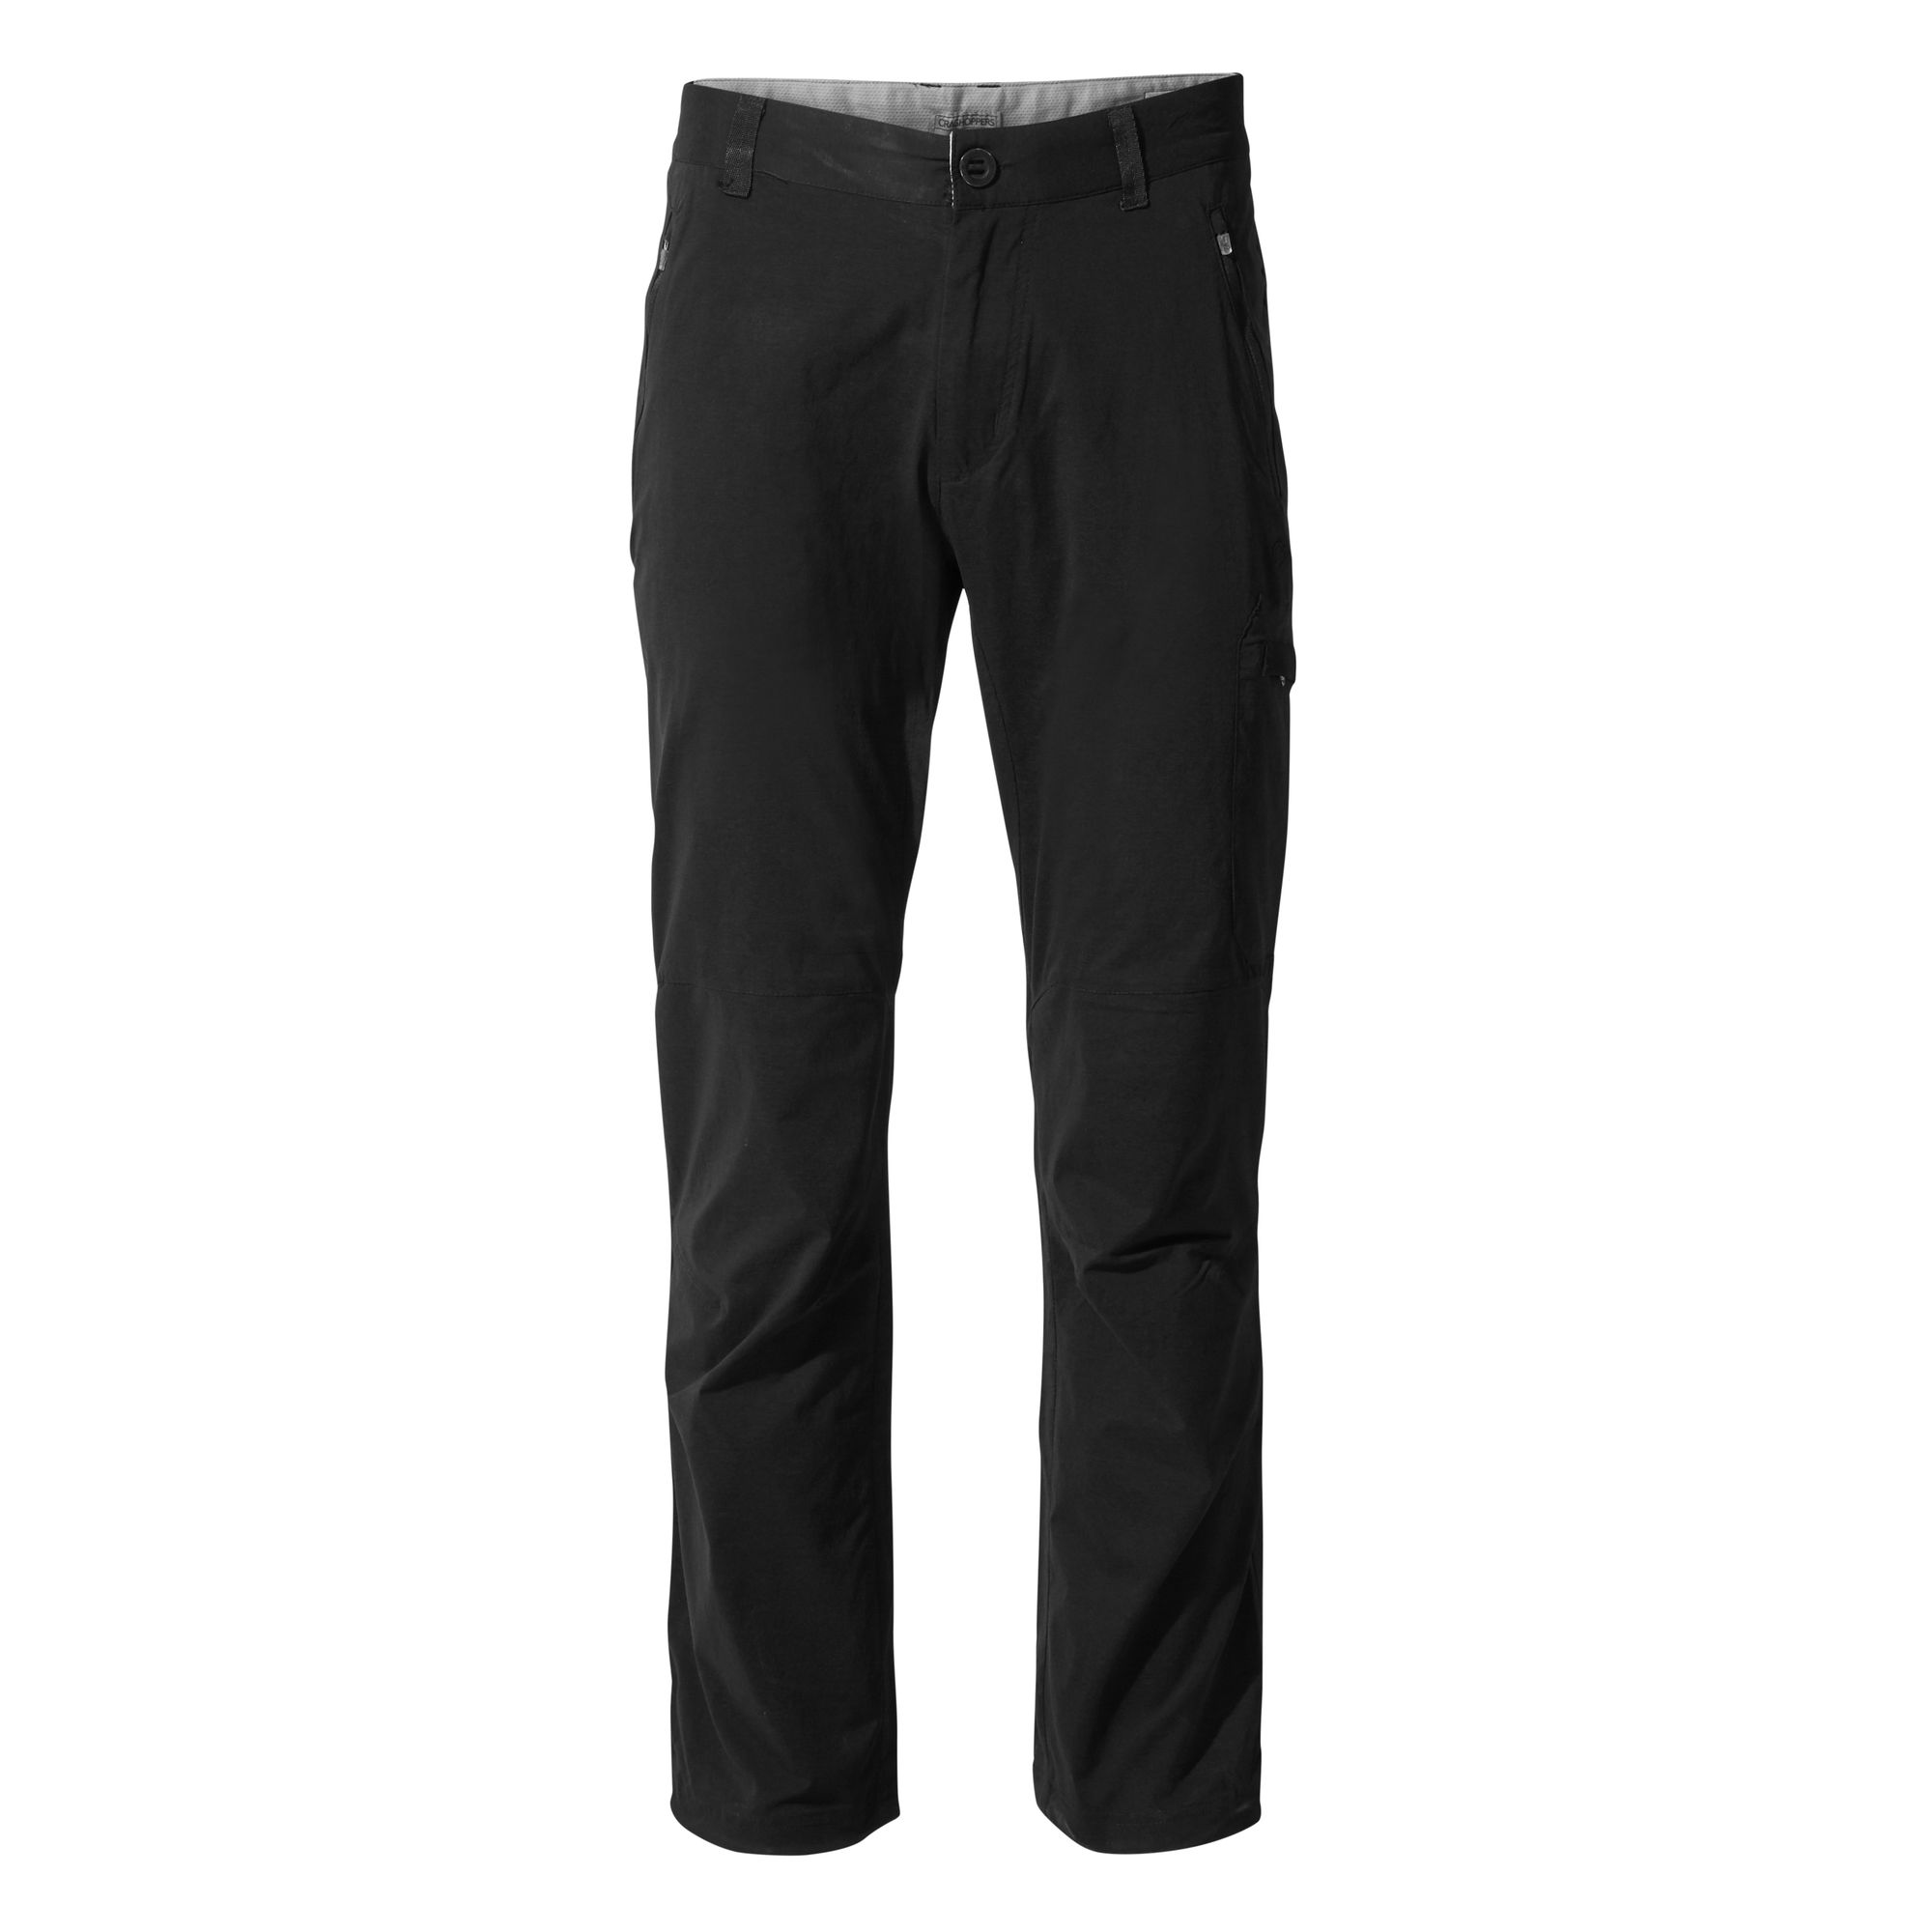 Craghoppers Mens NosiLife Pro II Trousers (42R) (Black)